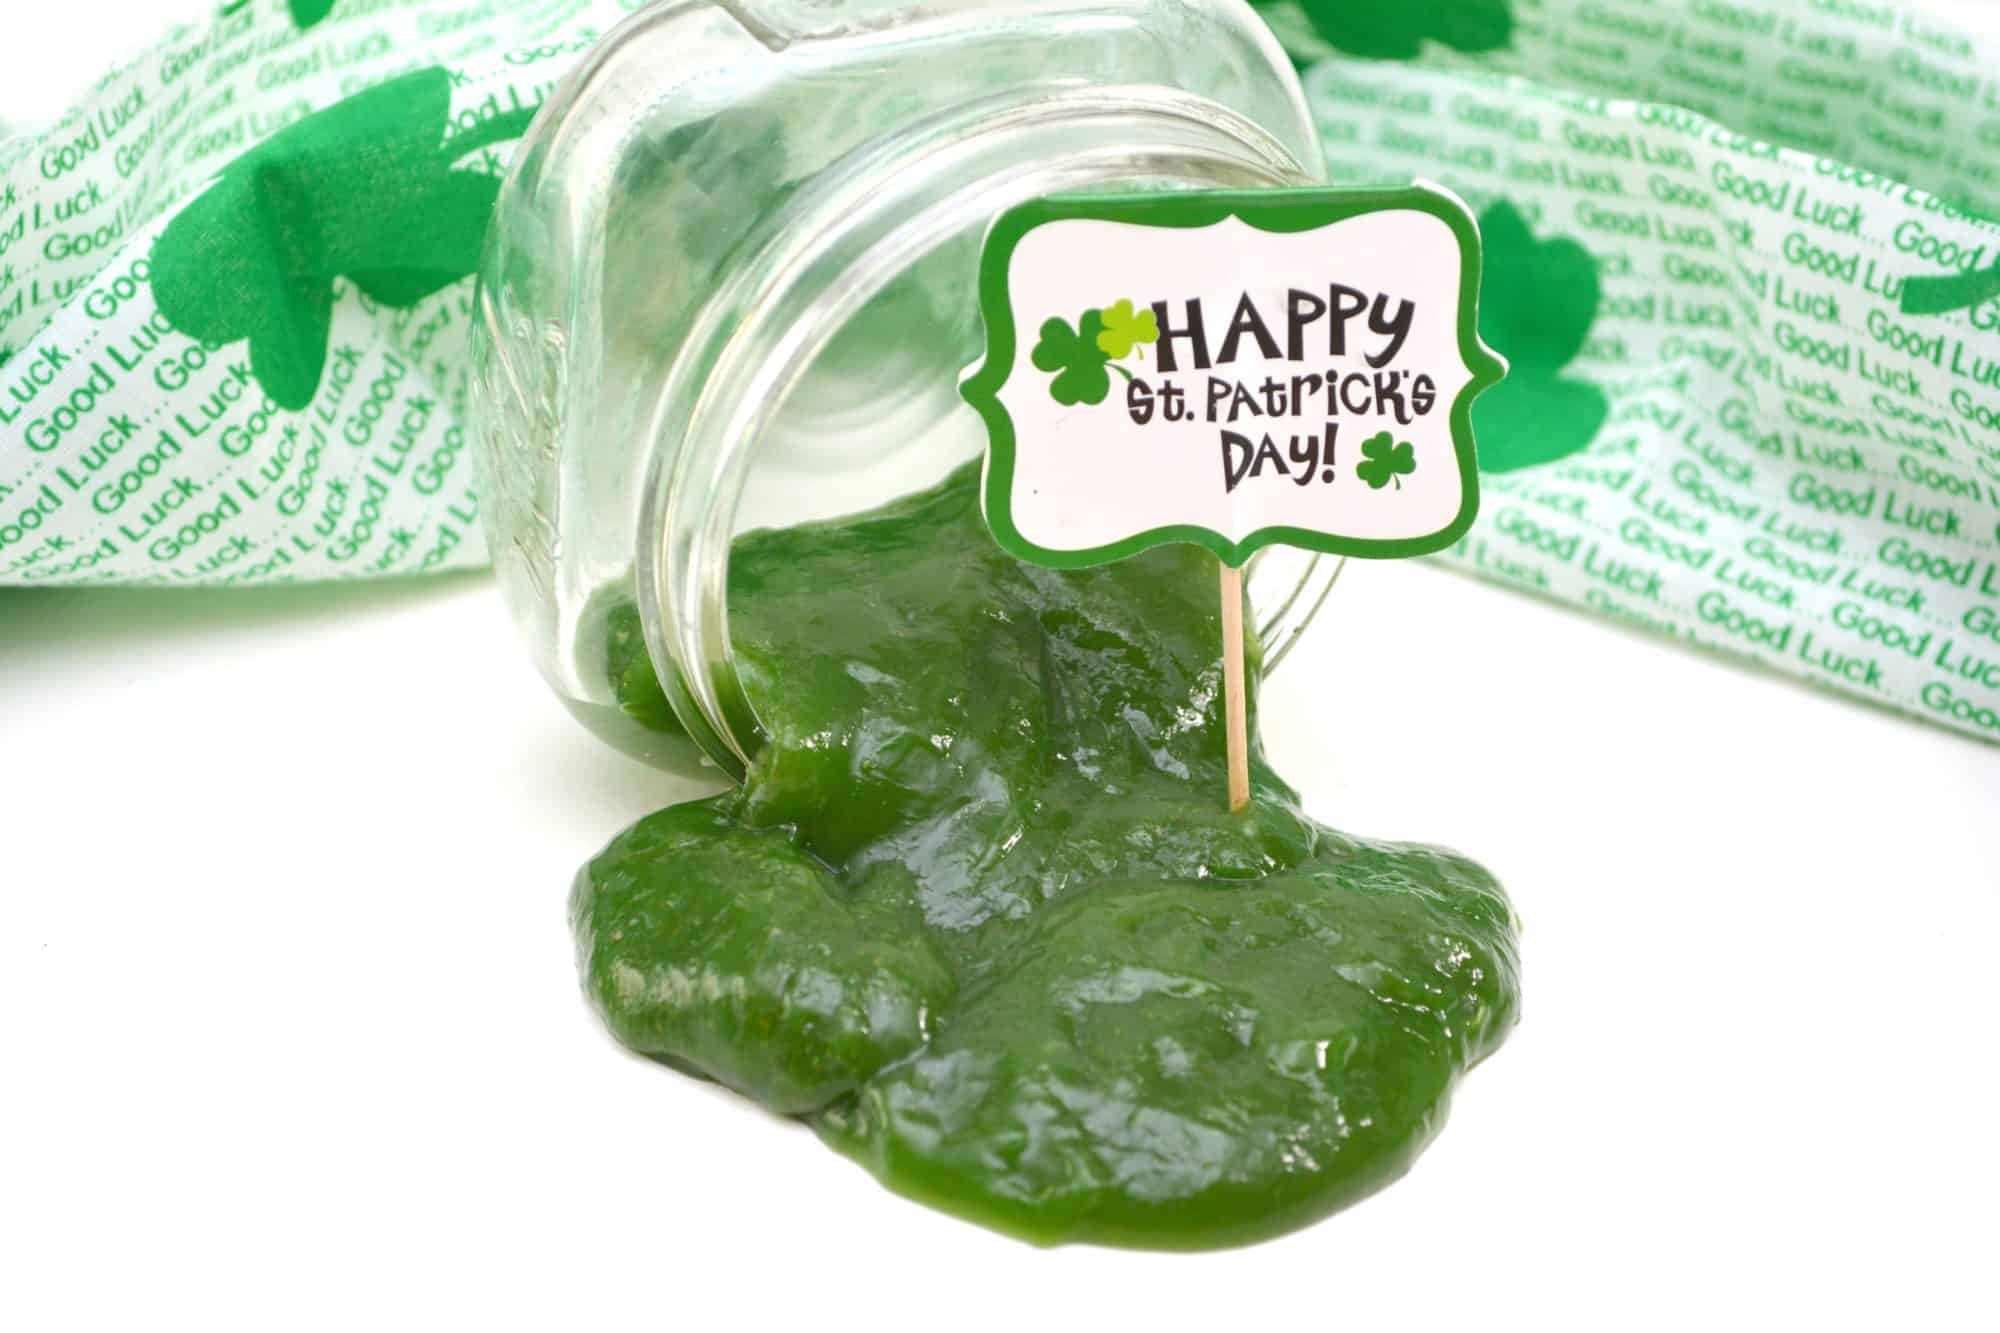 St. Patrick's Day Green Edible Slime Recipe